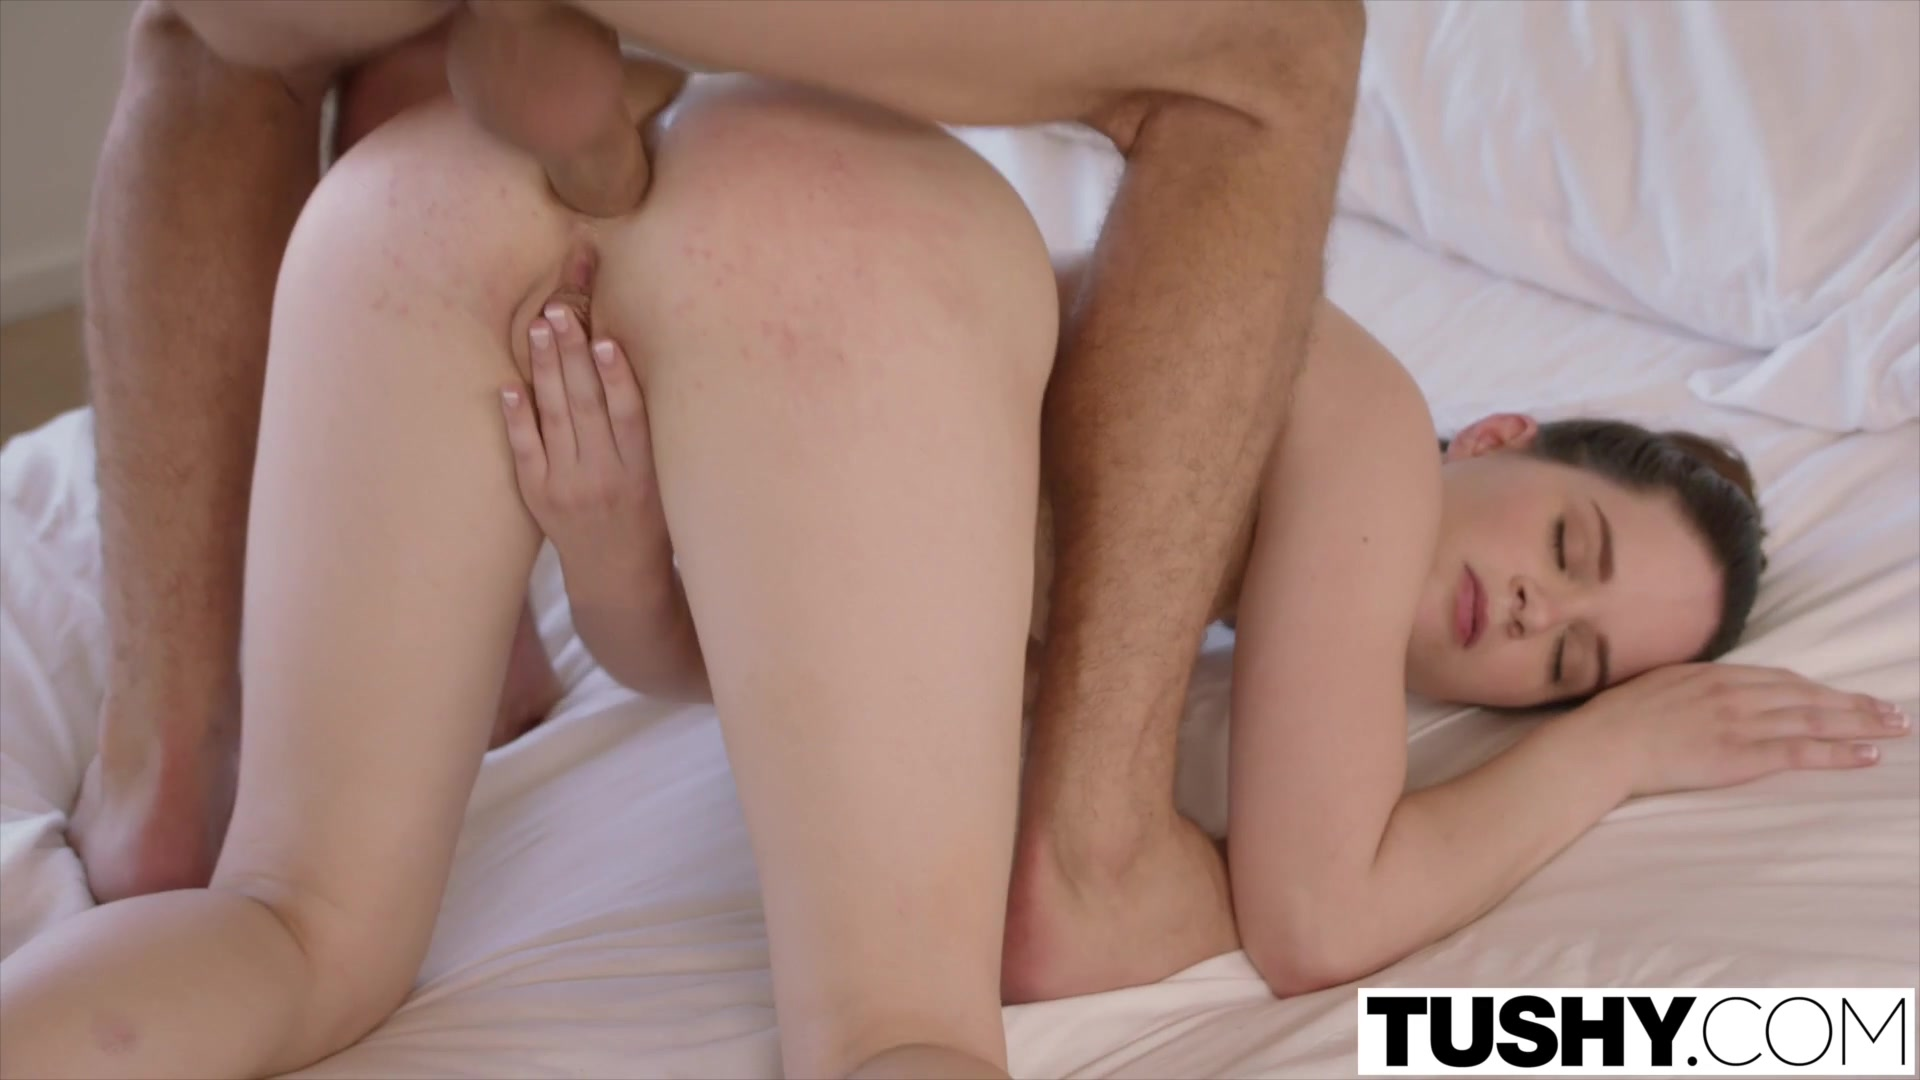 TUSHY Young Ballerina Explores Anal Sex with her Teacher tiffany teen sex